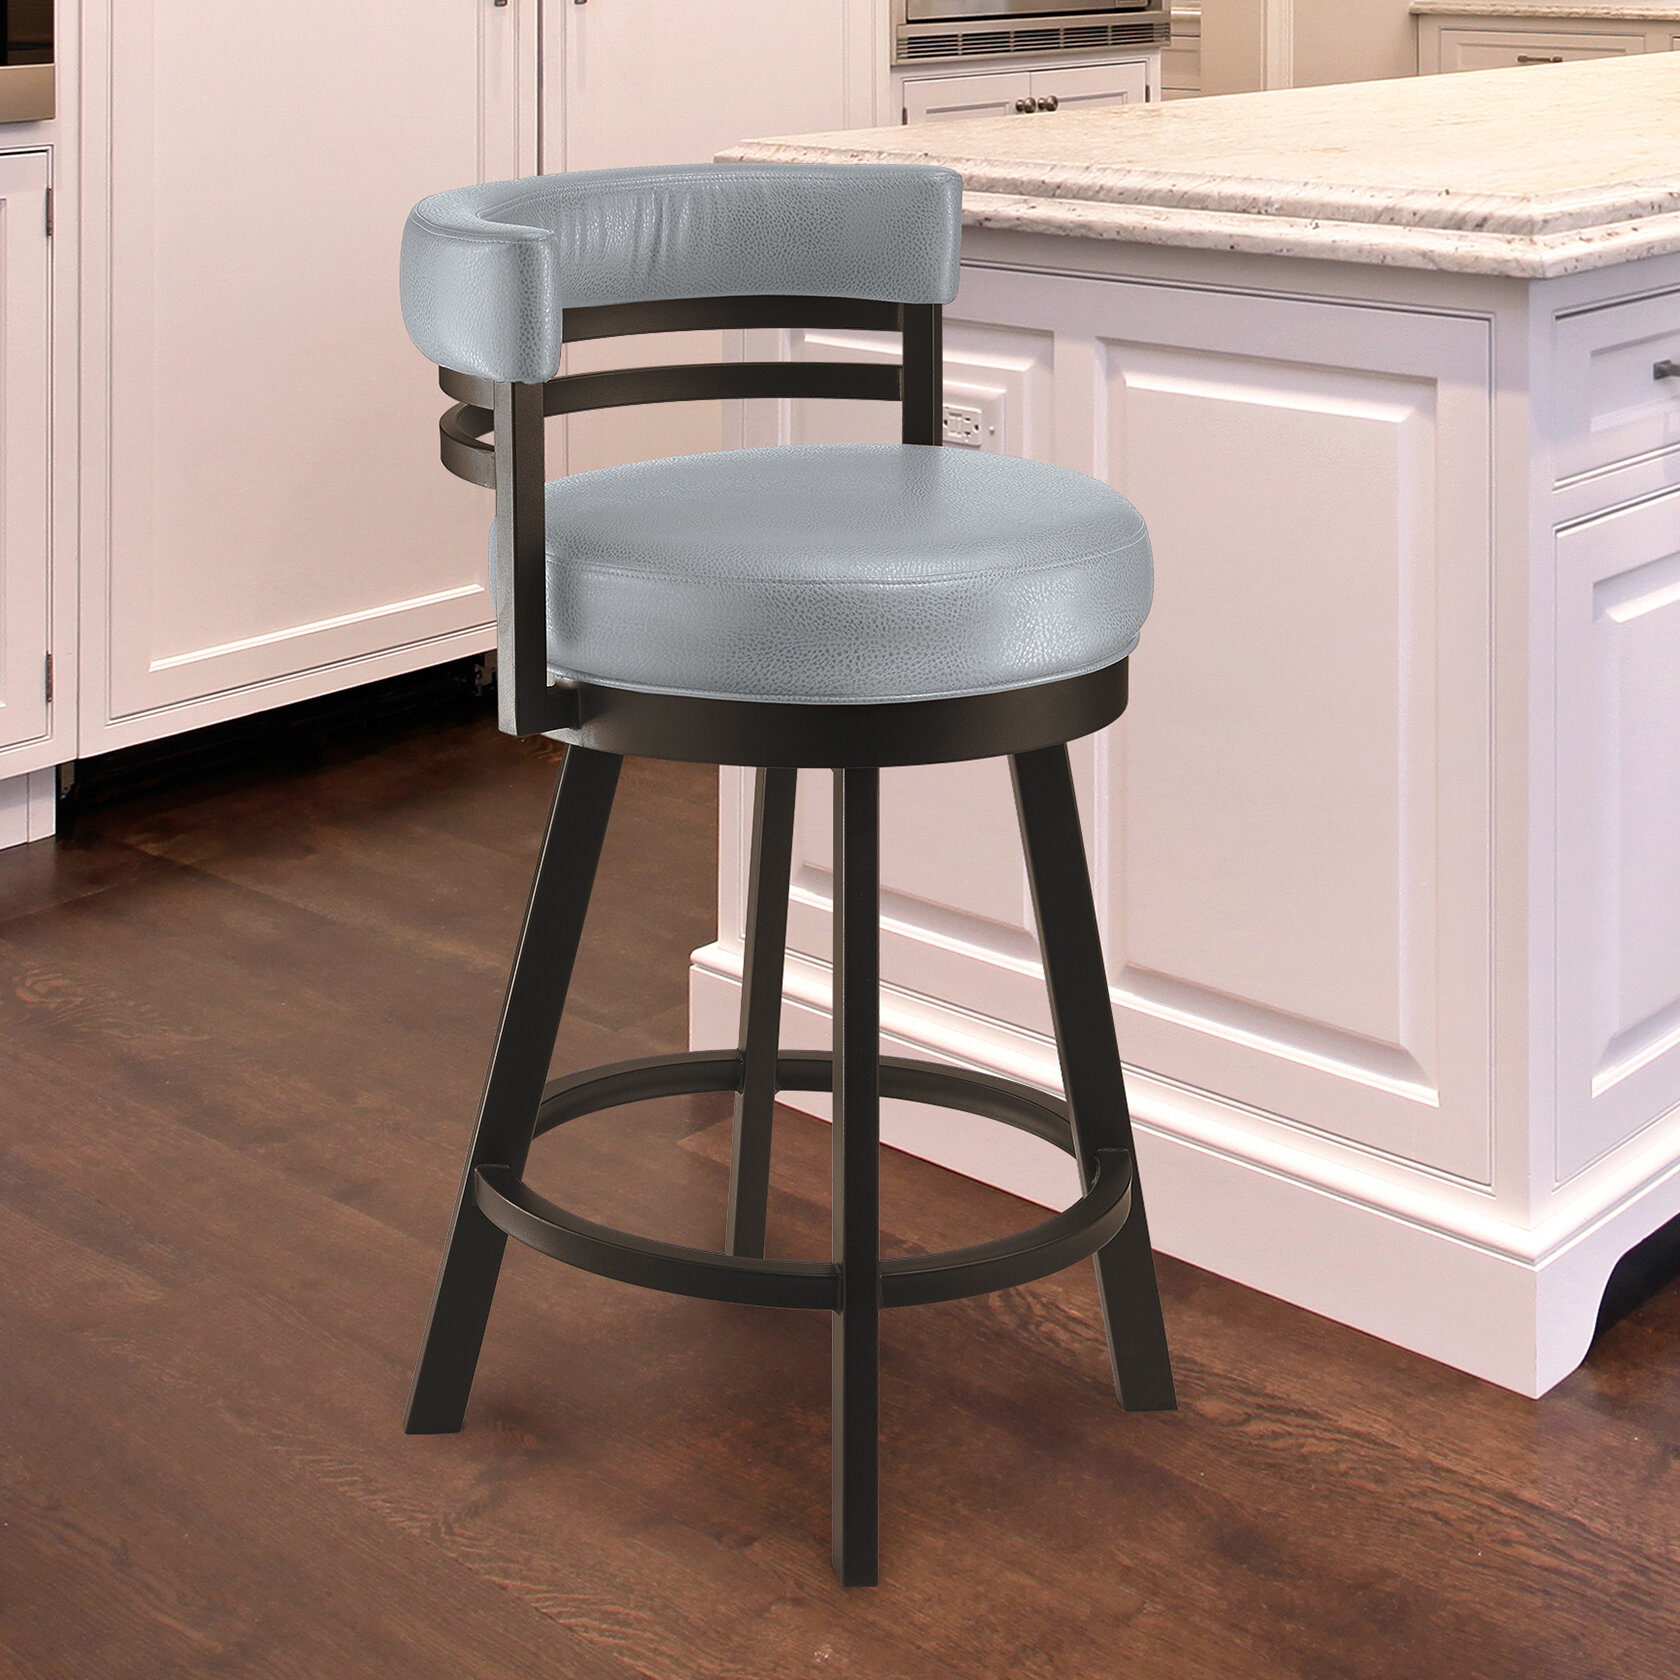 Phenomenal Details About Red Barrel Studio Homan 26 Swivel Bar Stool Gmtry Best Dining Table And Chair Ideas Images Gmtryco